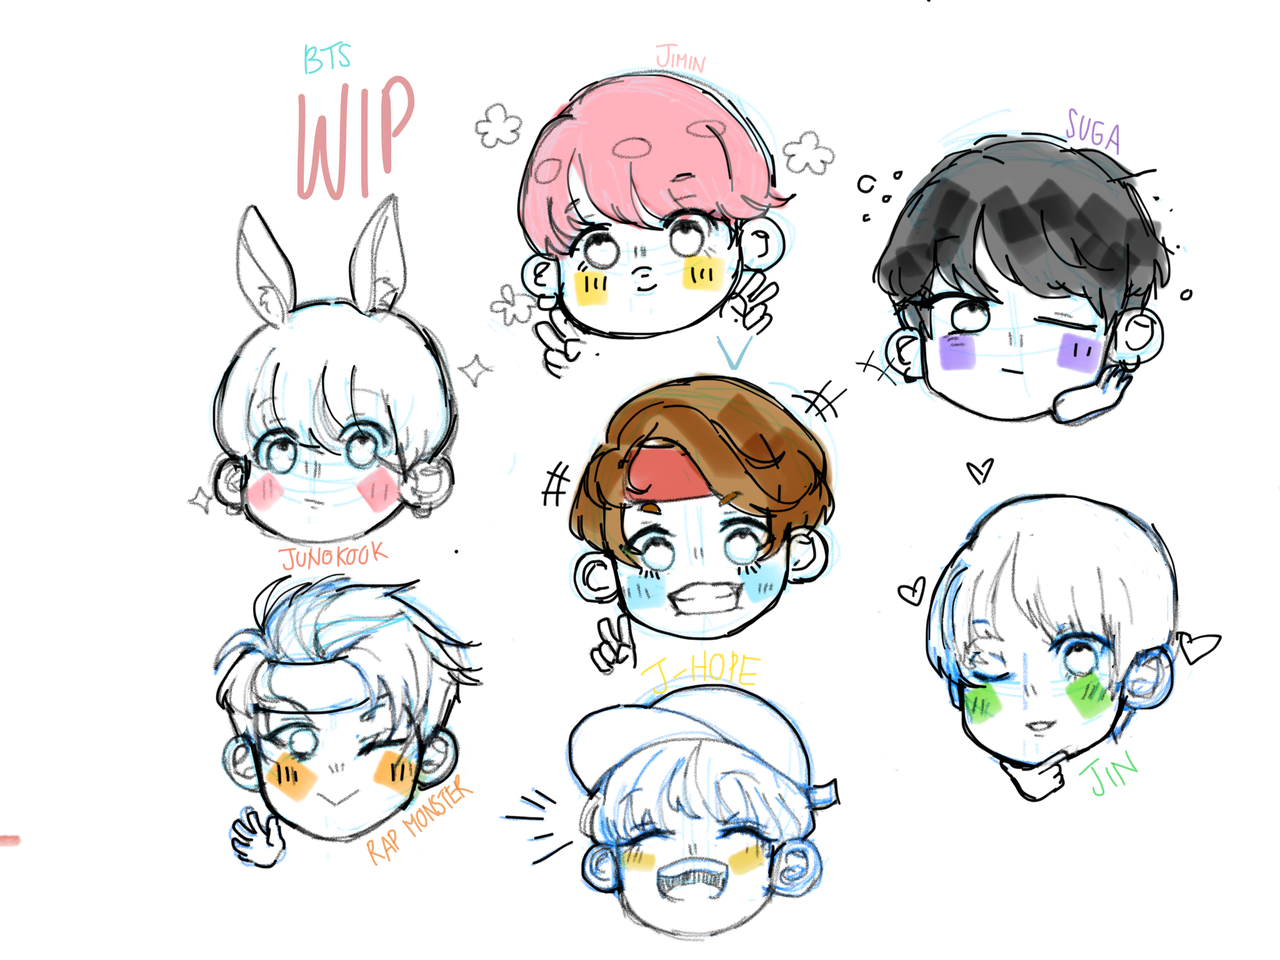 Bts Chibi Work In Progress Lcstmyway イラスト アート